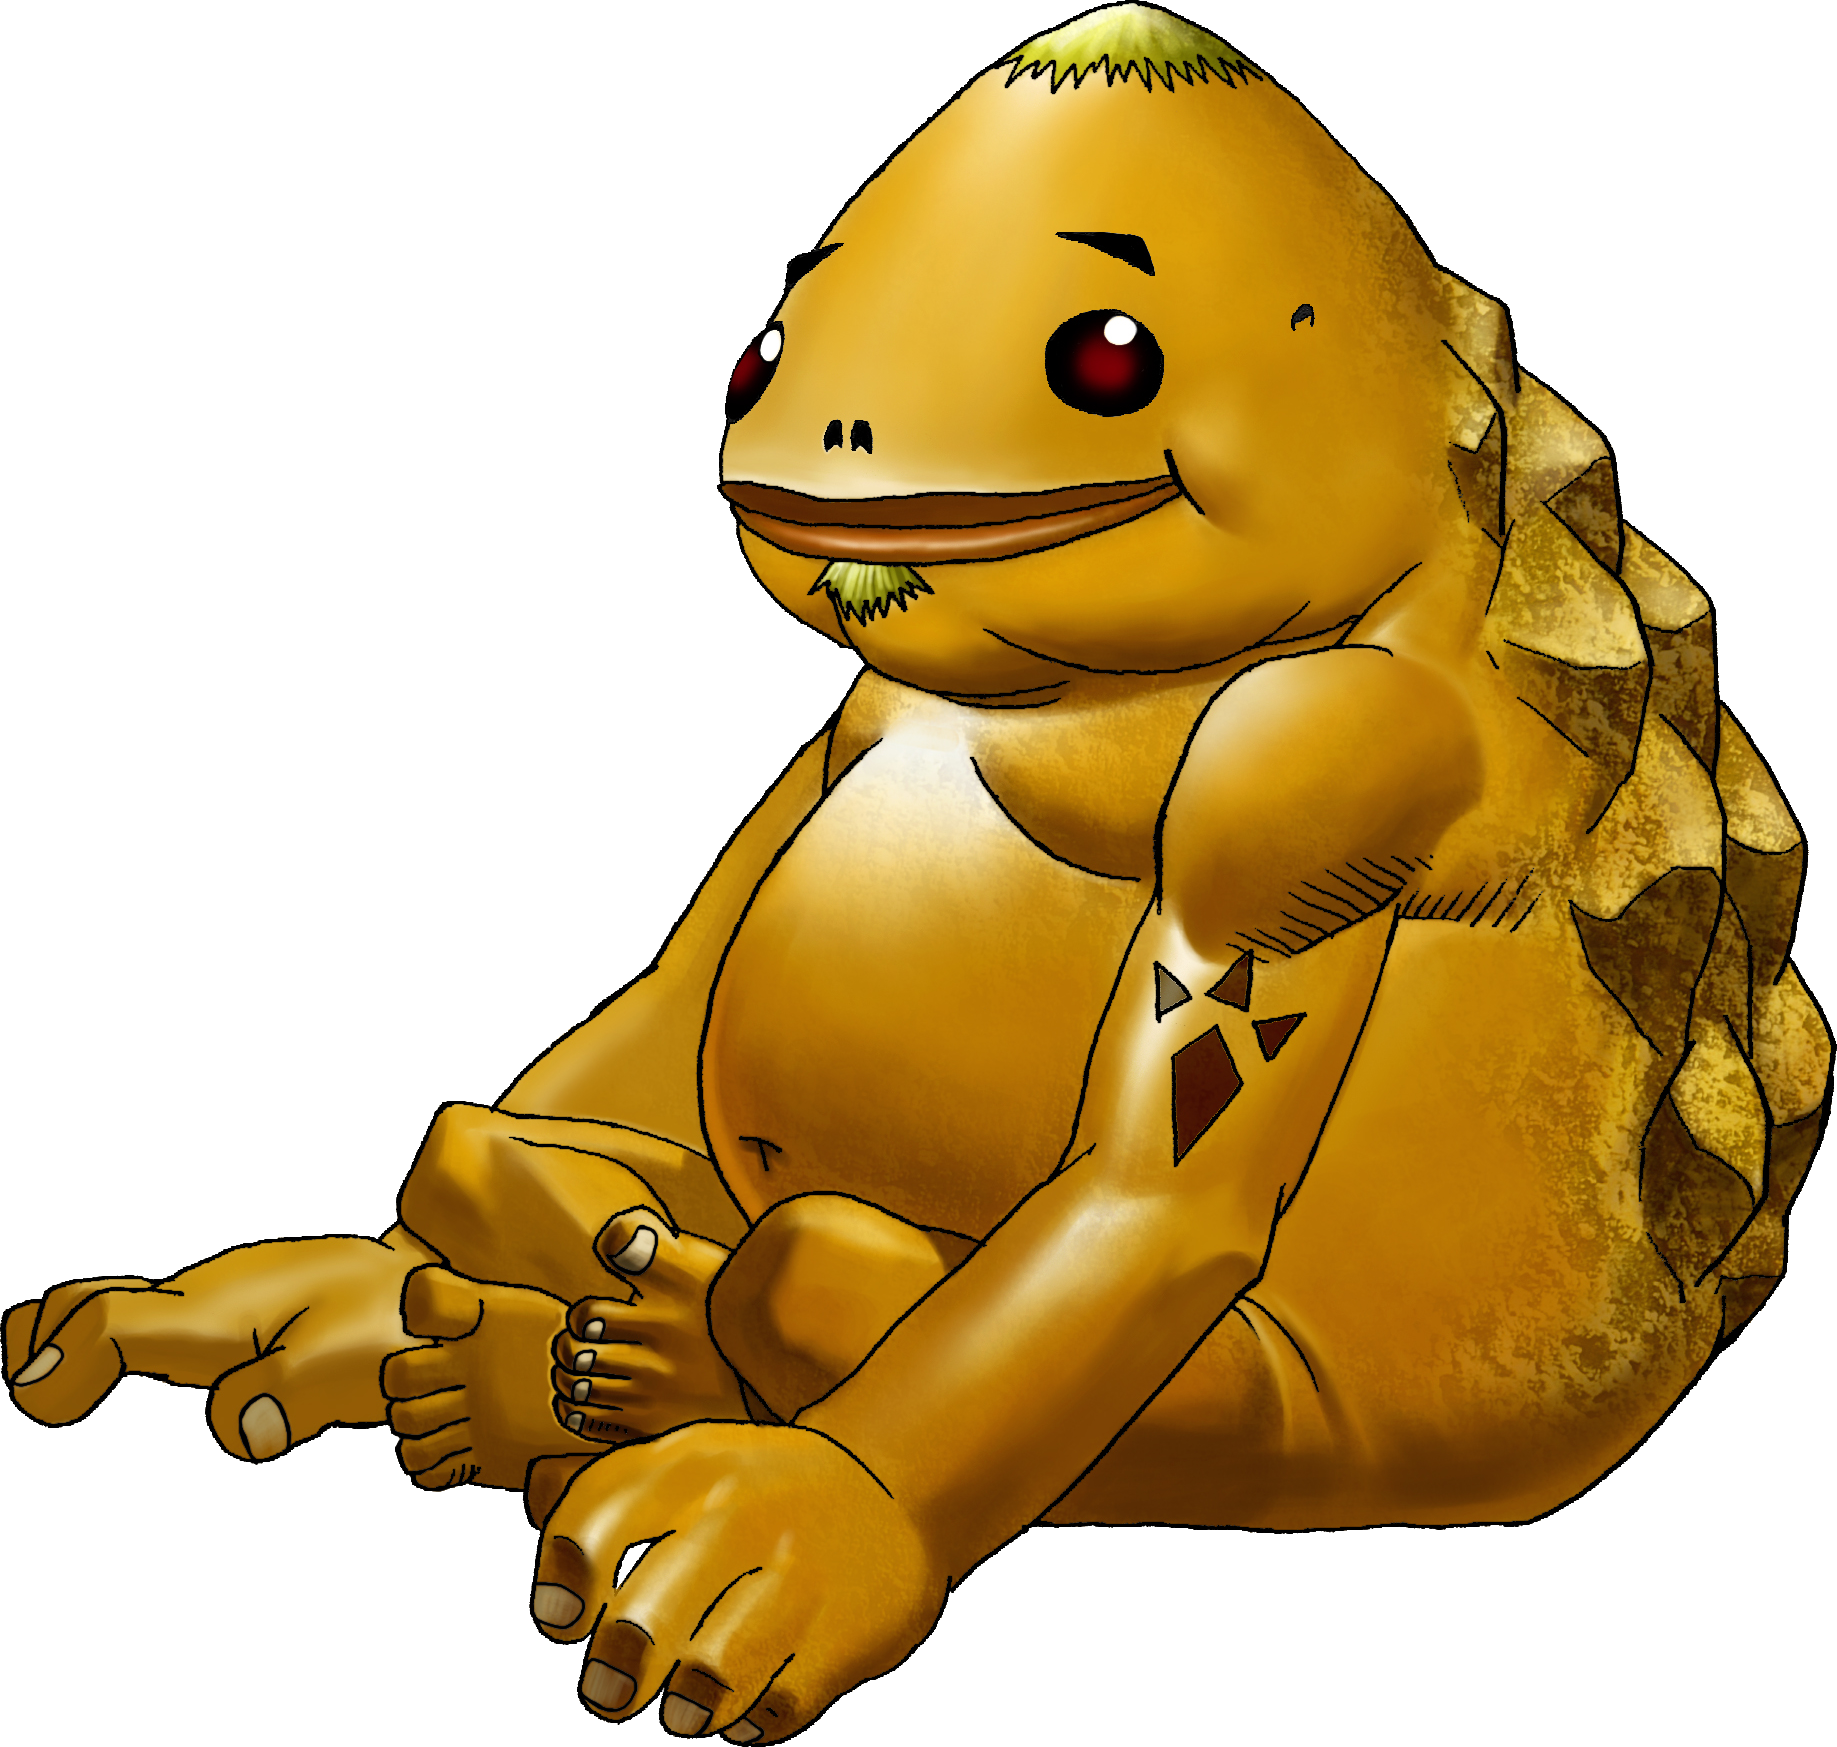 Goron_Artwork_%28Ocarina_of_Time%29.png